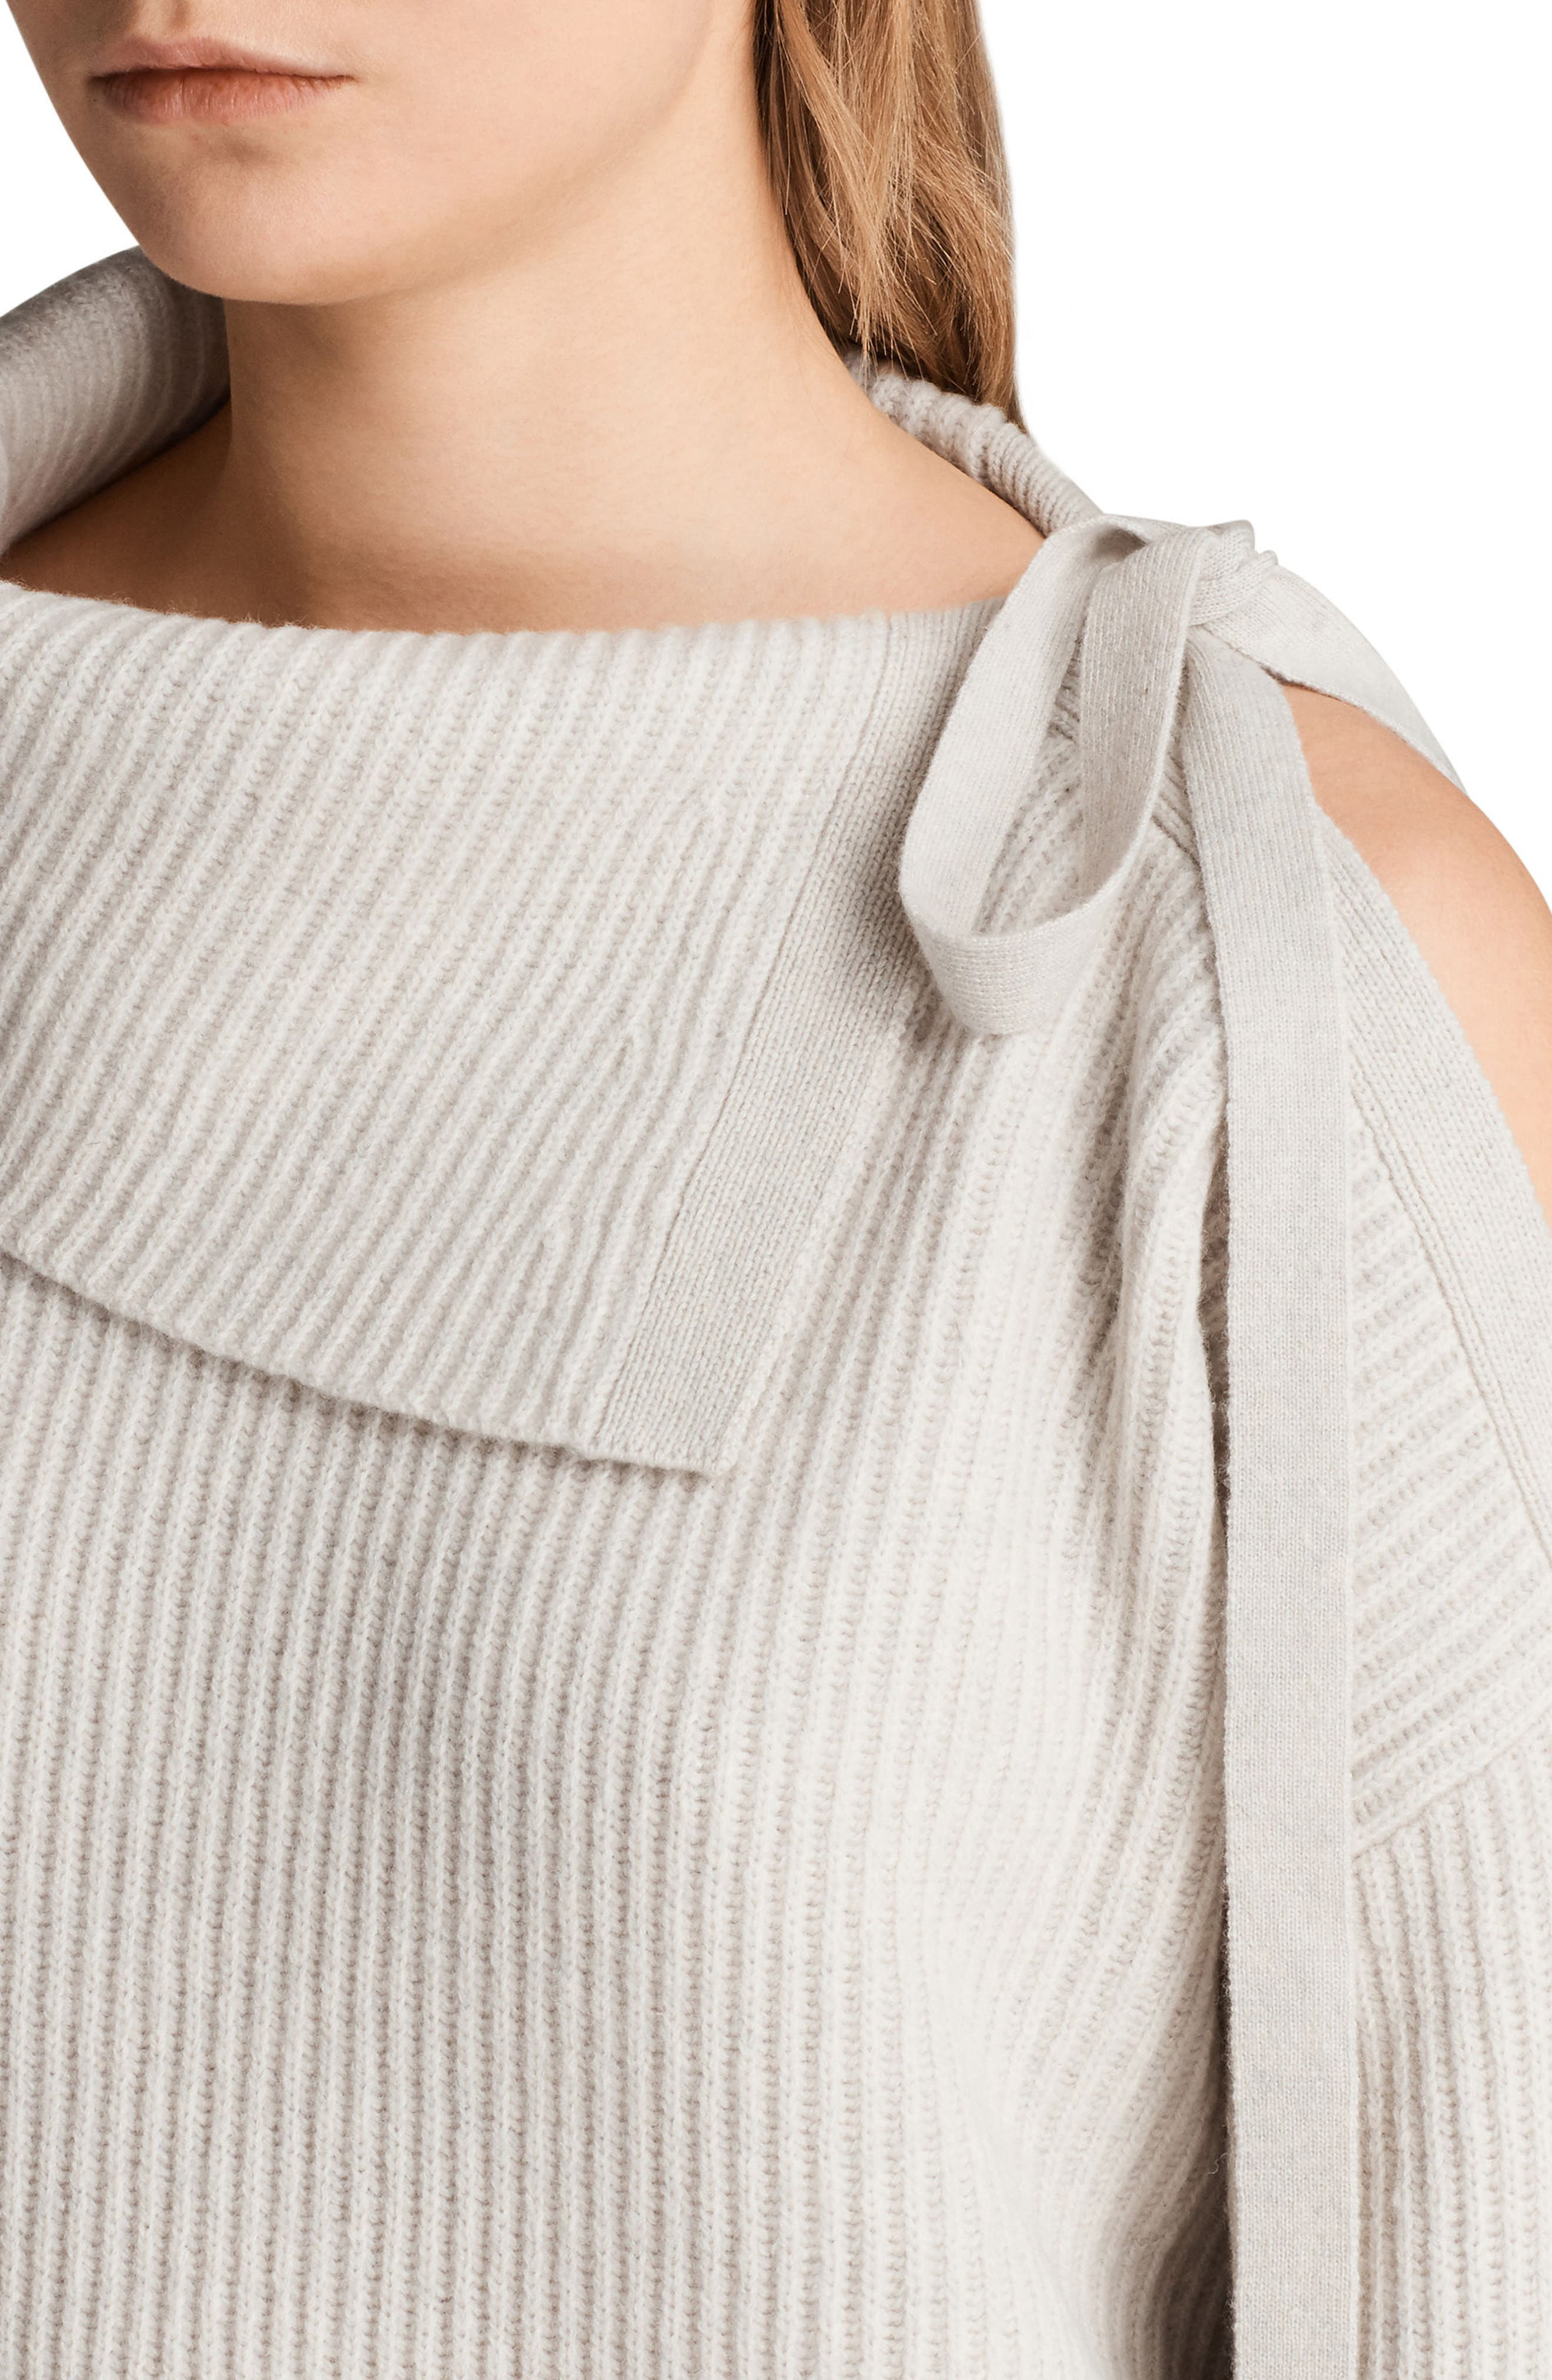 ALLSAINTS,                             Sura Tie Neck Sweater,                             Alternate thumbnail 4, color,                             252